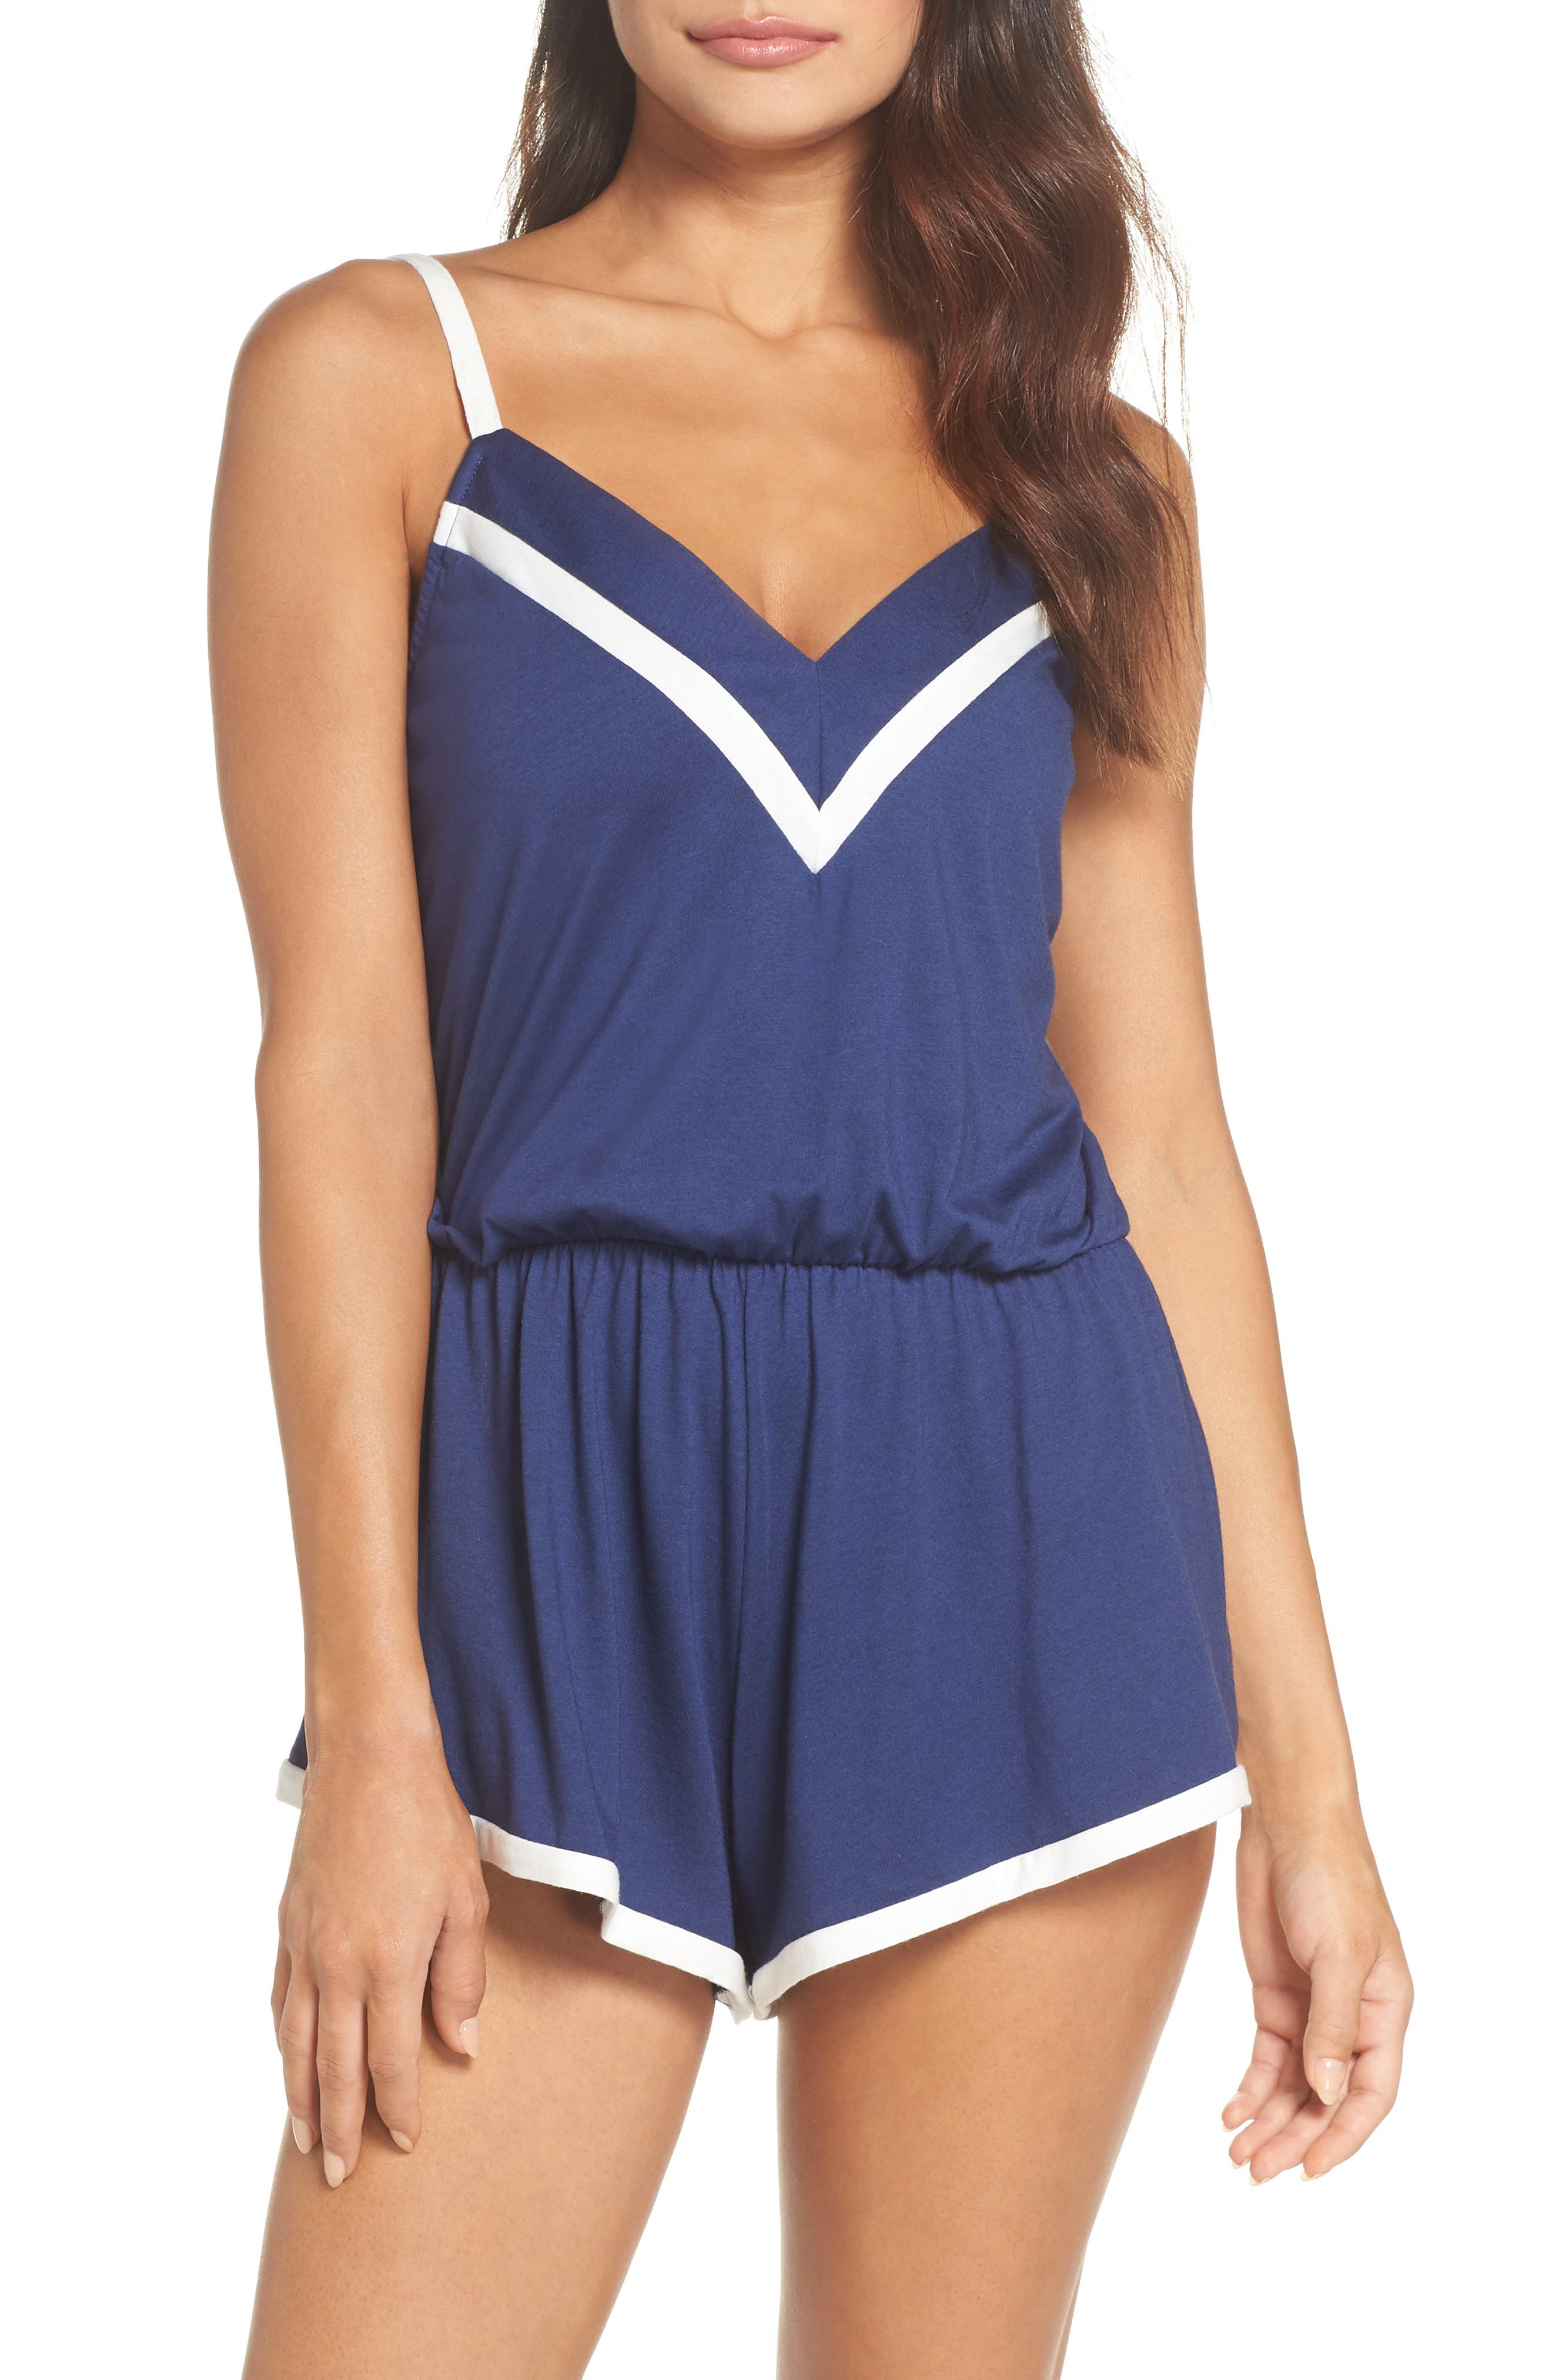 Bella Striped-Trim Teddy Amore2211 in Marble Blue